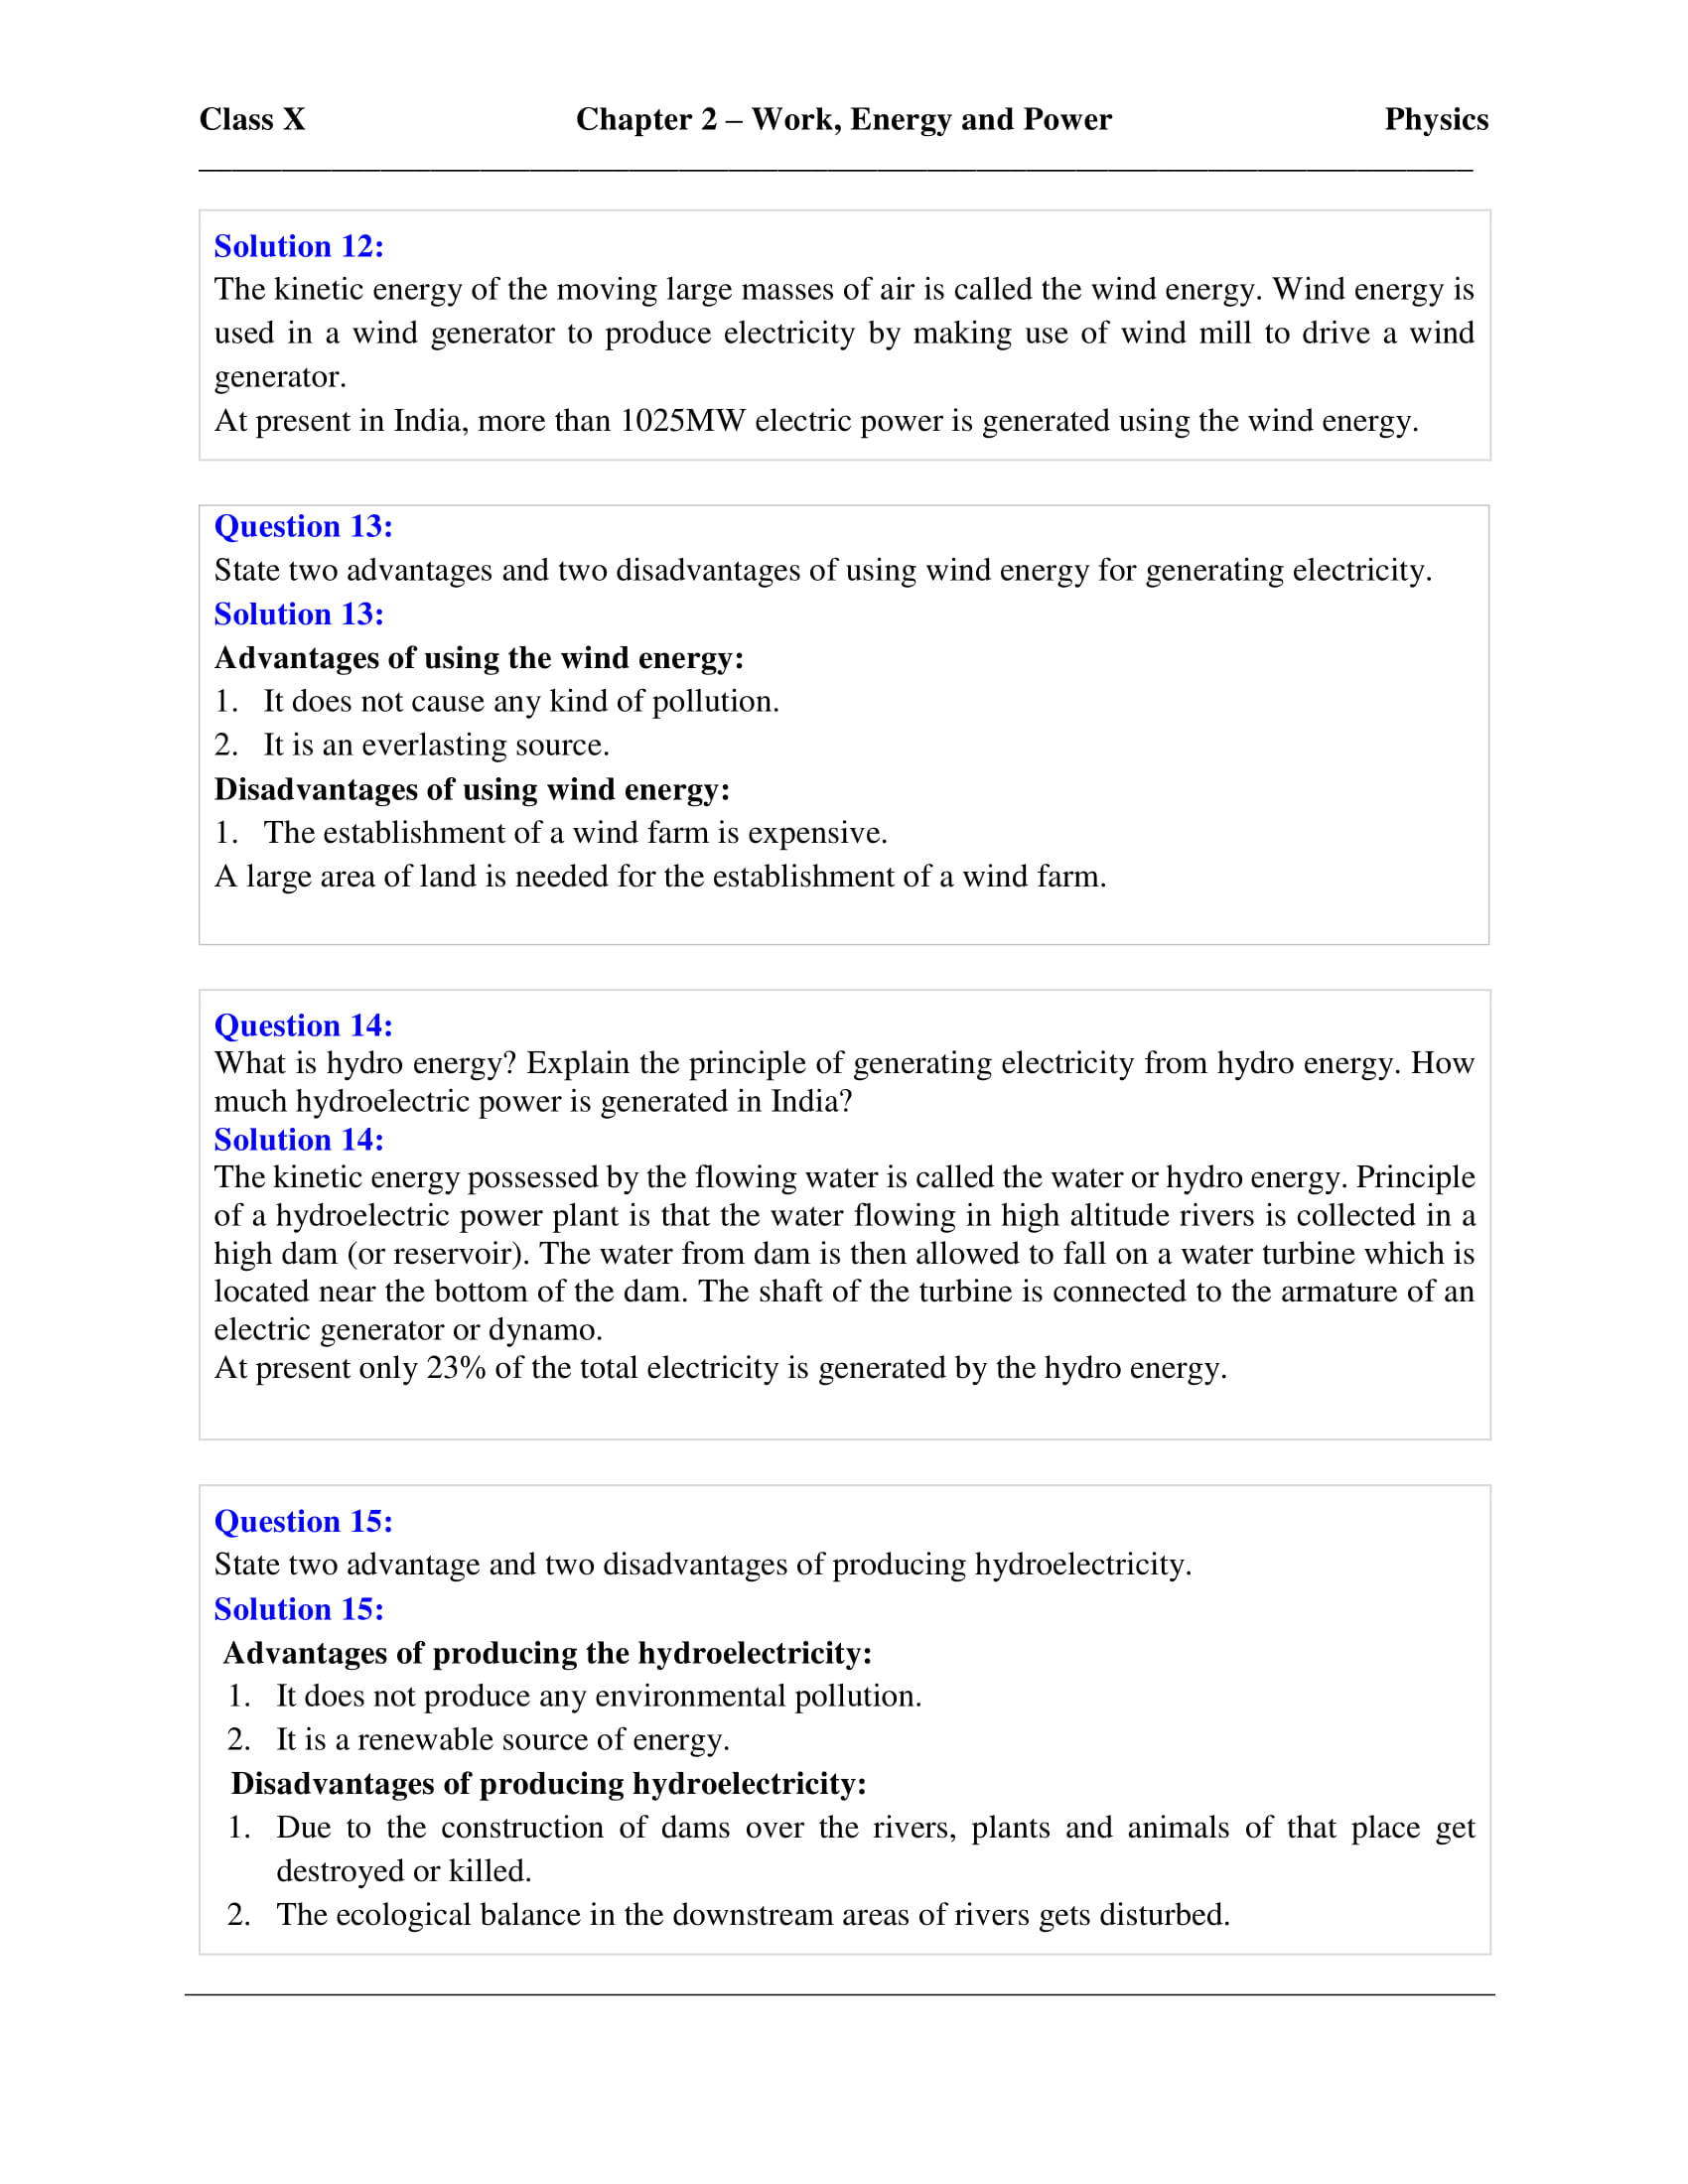 icse-selina-physics-solutions-class-10-chapter-2-work-energy-and-power-37